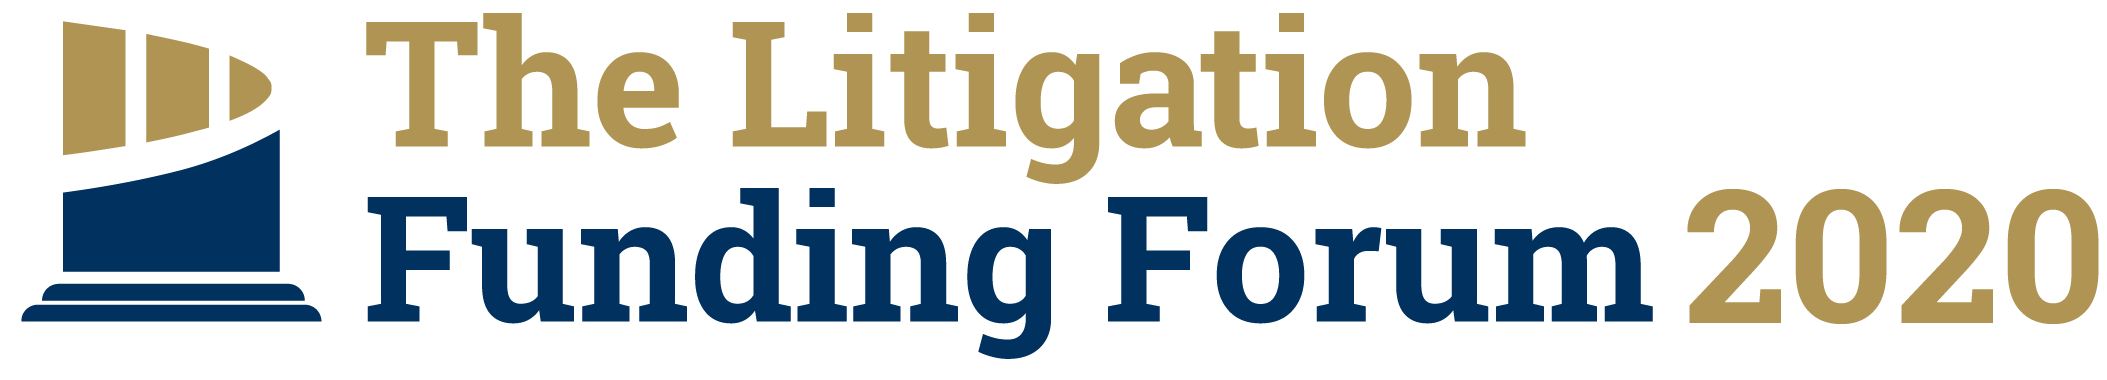 The Litigation Funding Forum 2020